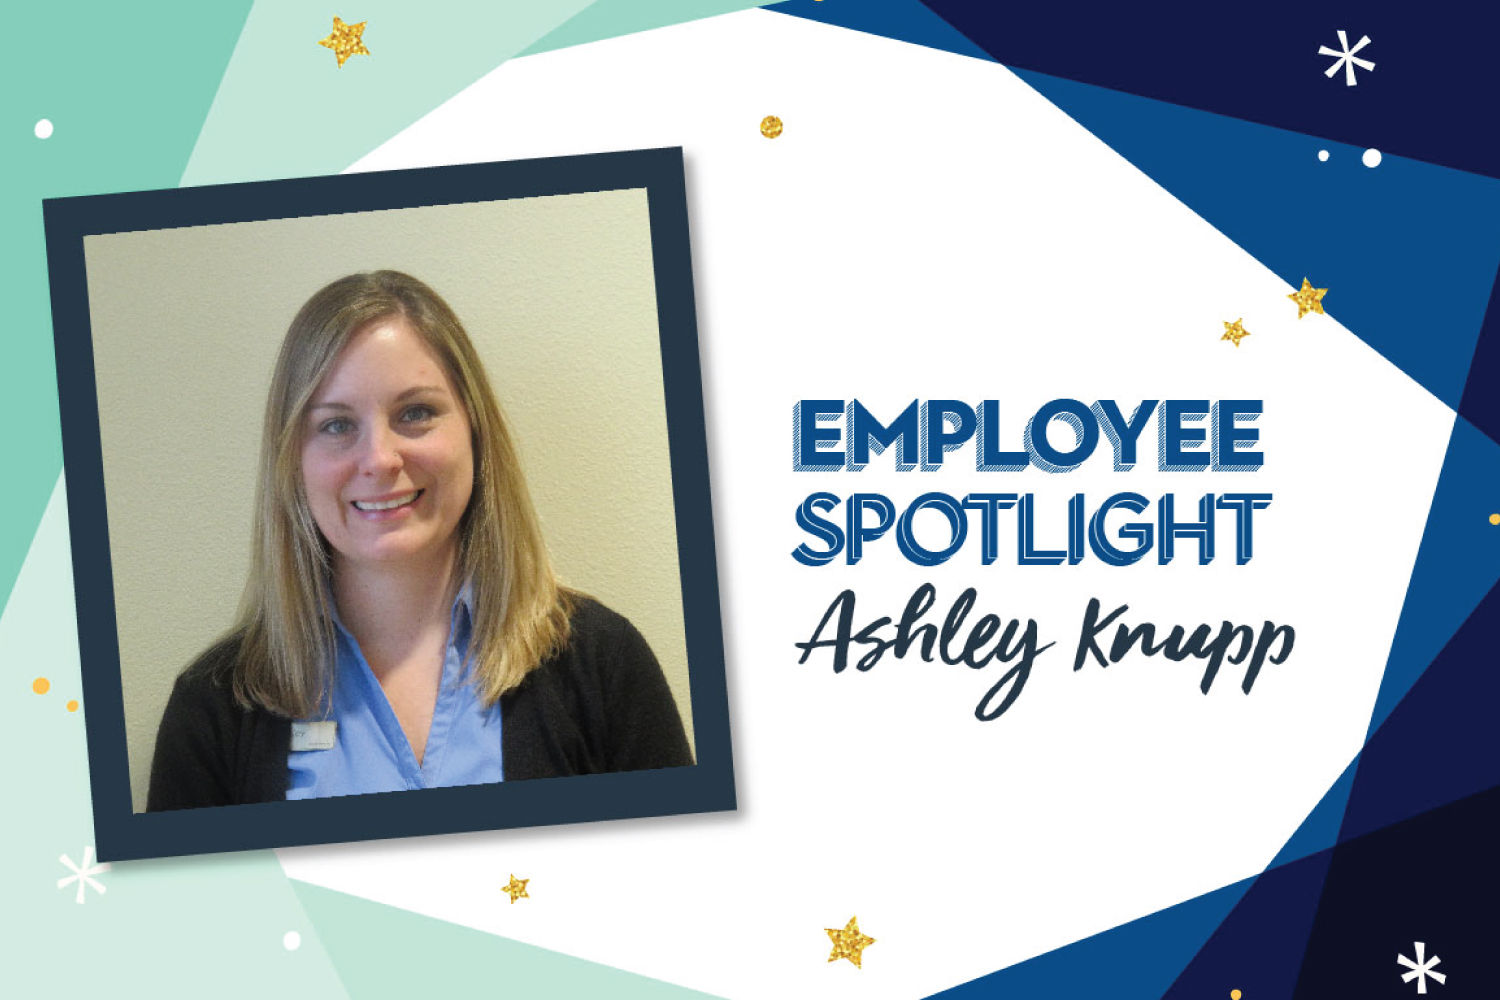 Employee Spotlight: Ashley Knupp